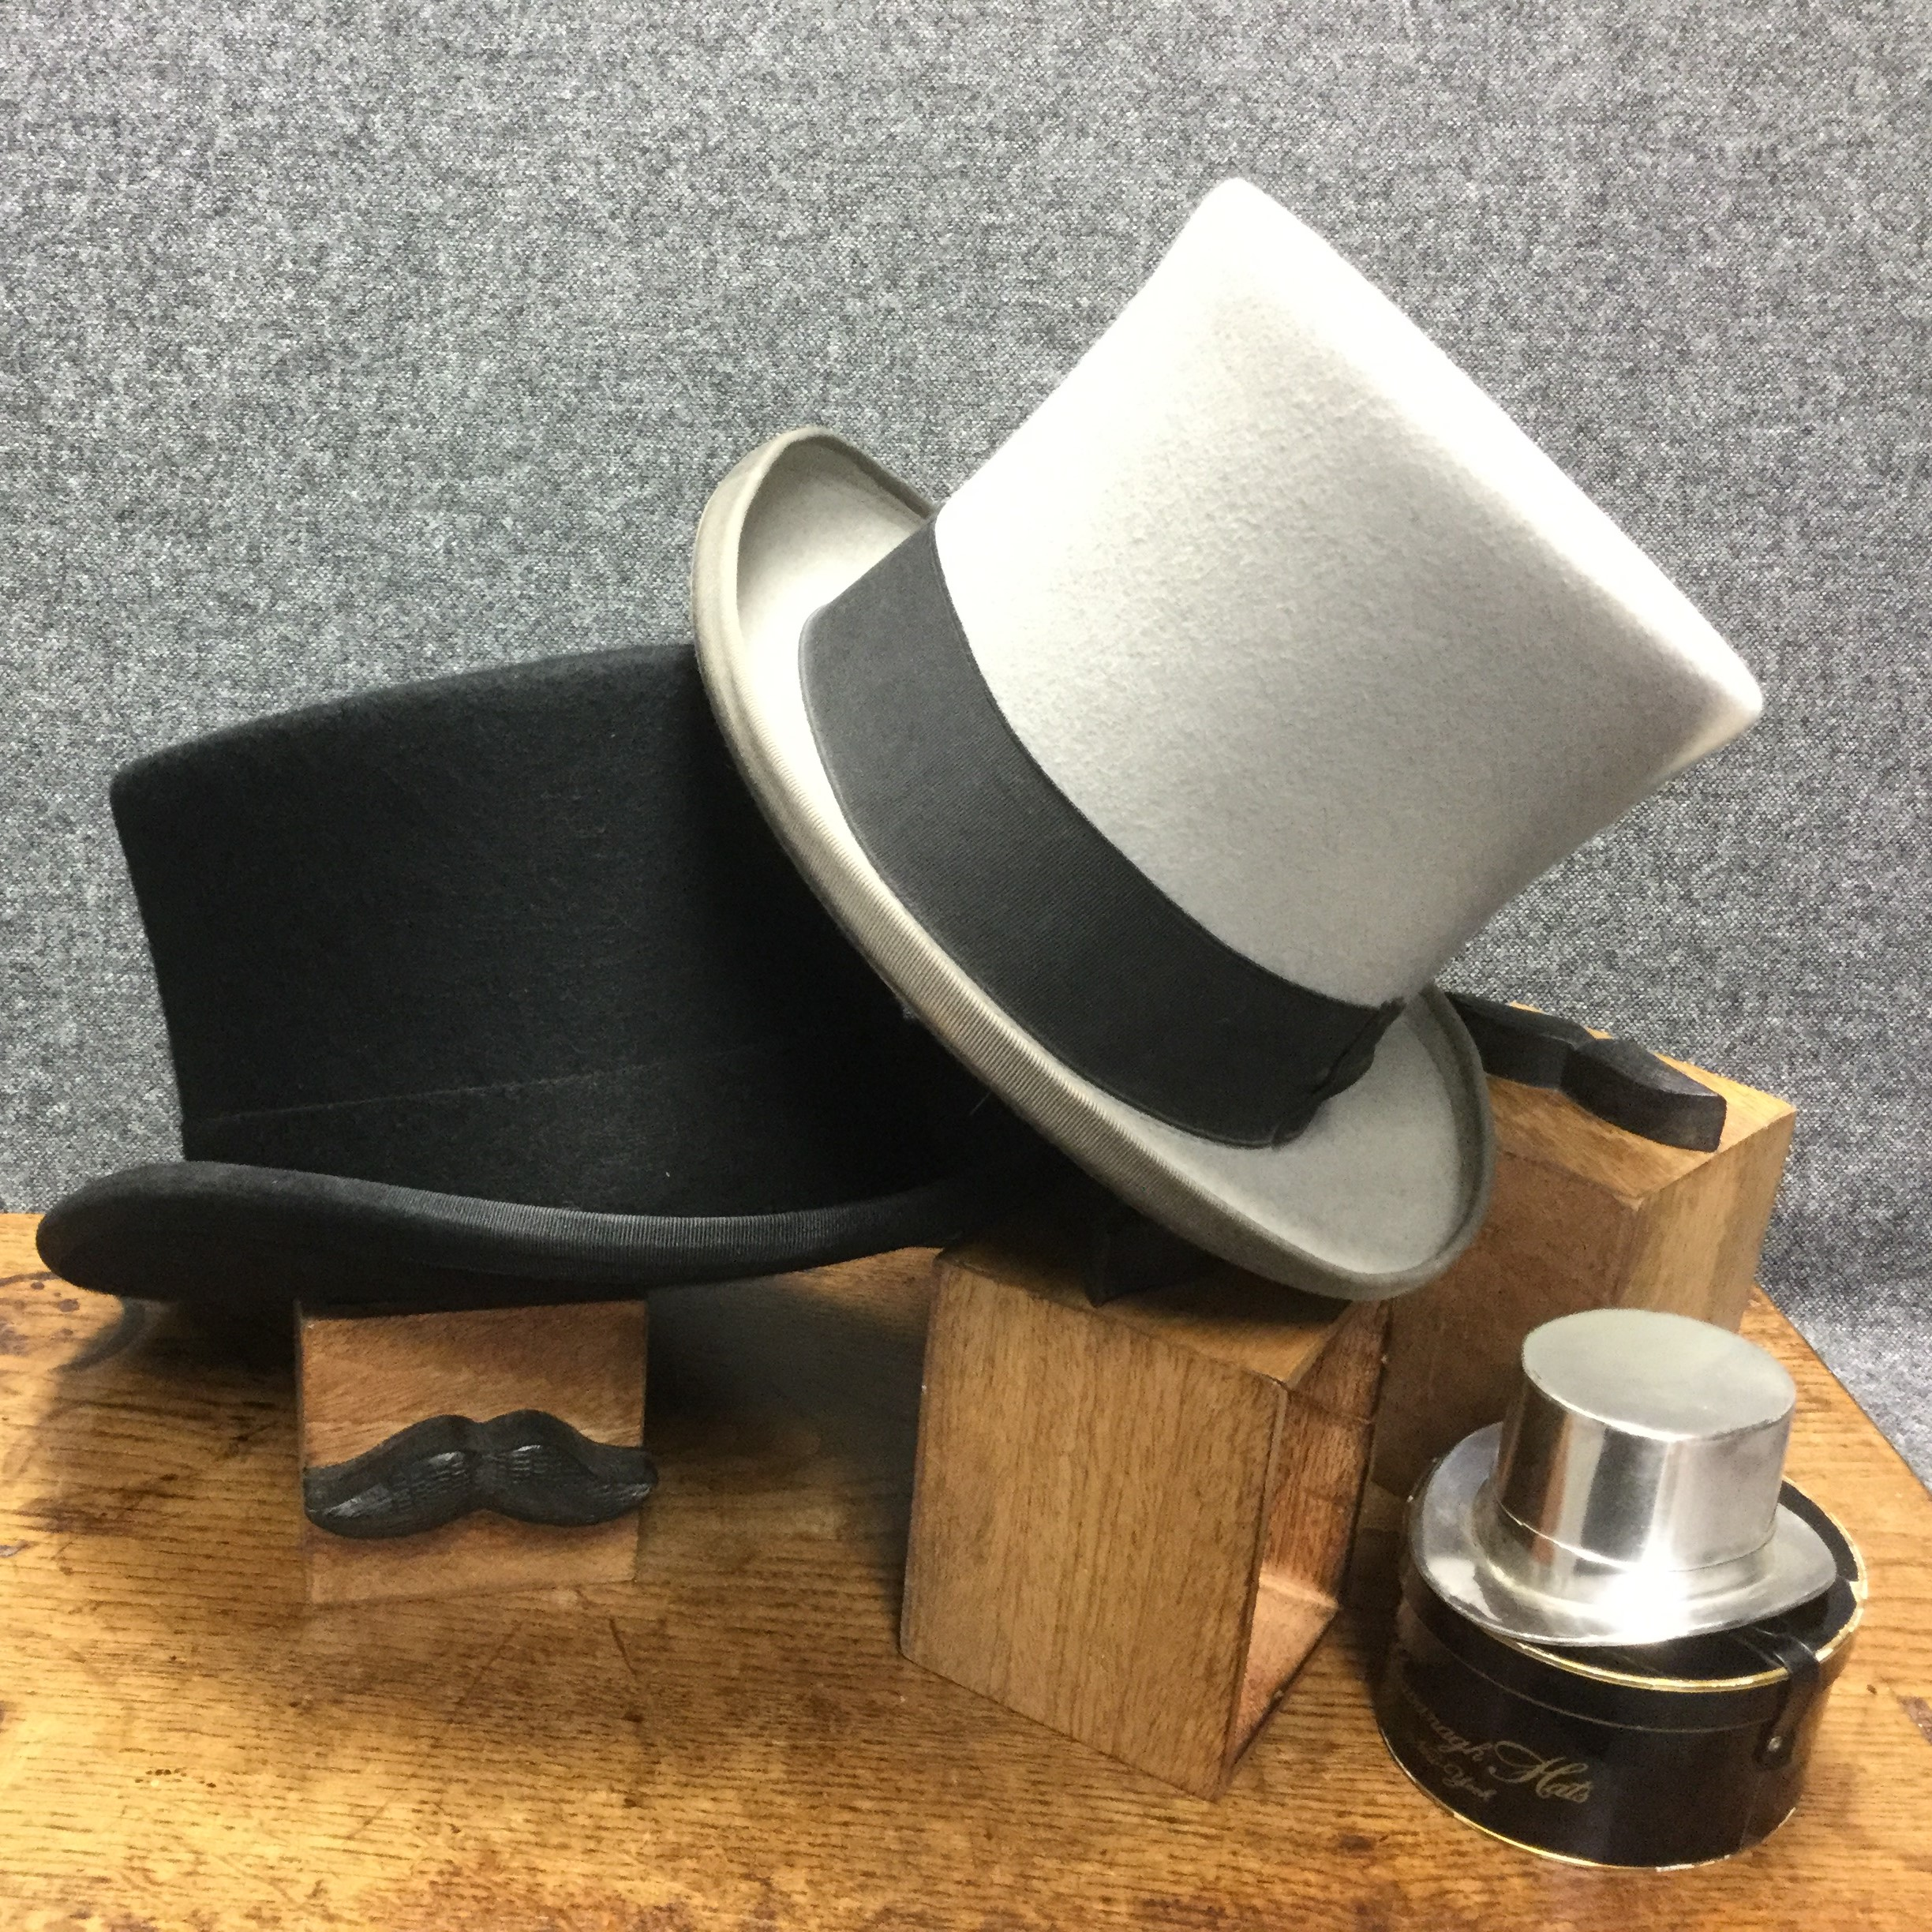 Black and Grey Formal Wear Top Hats for Royal Ascot and Weddings